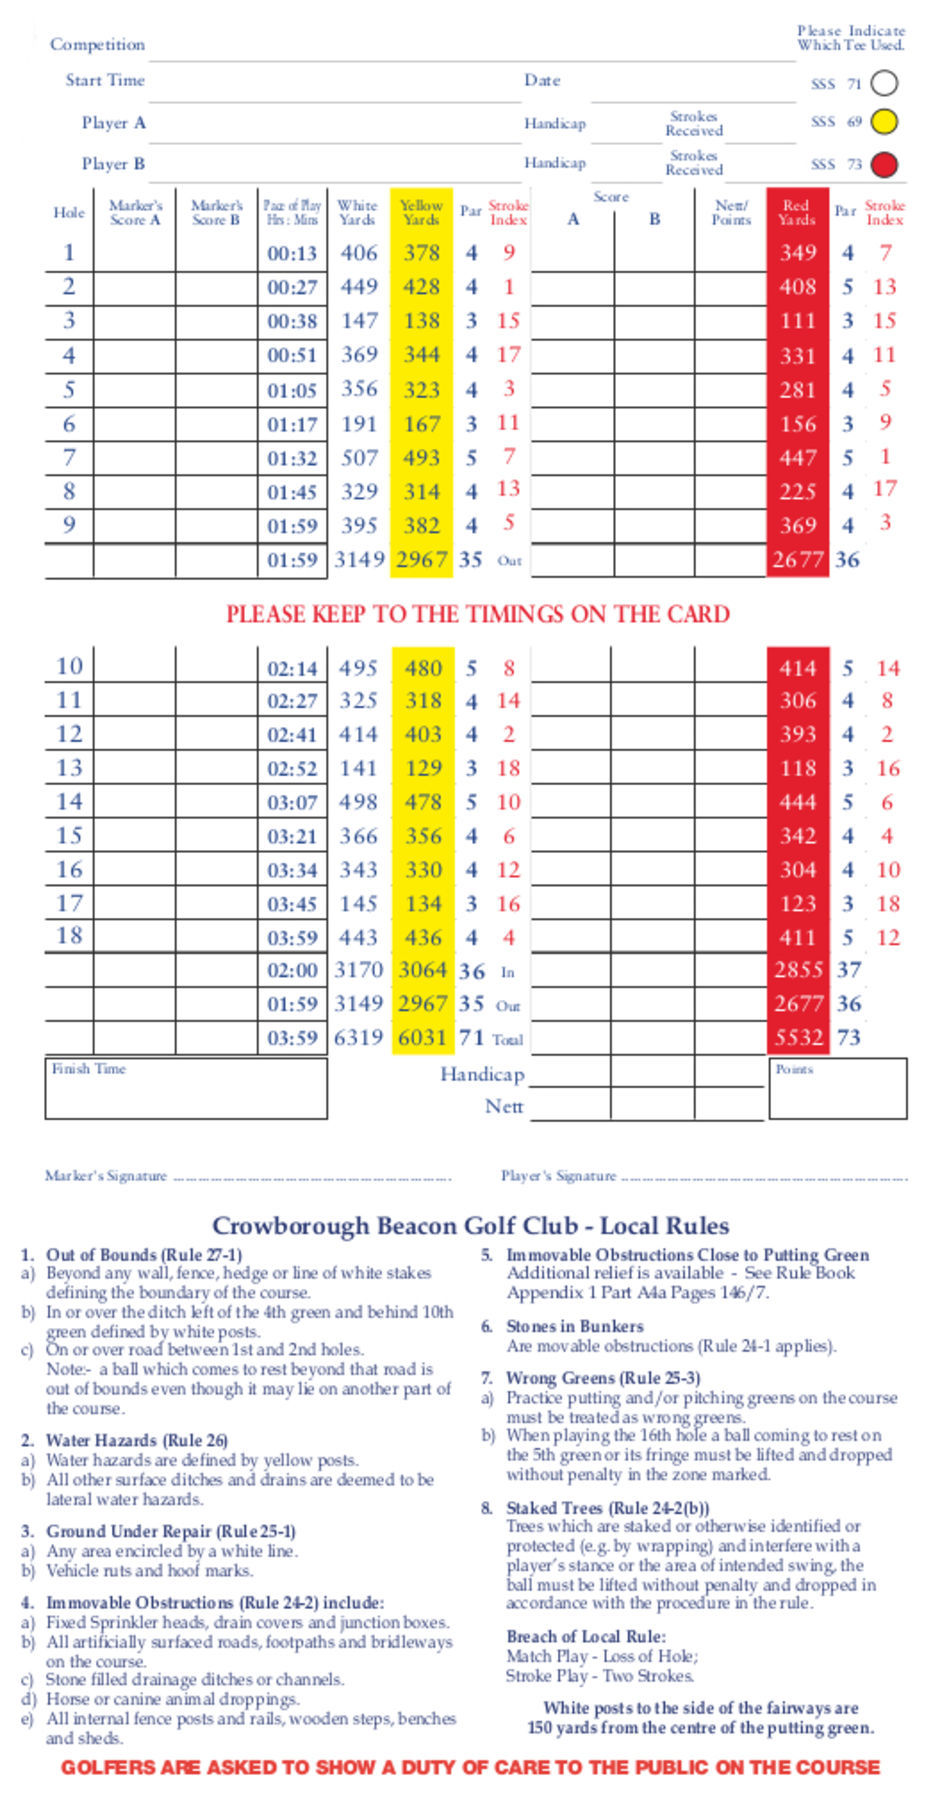 Full Course Card  Gentlemen SSS 71 & 69 Ladies SSS 73